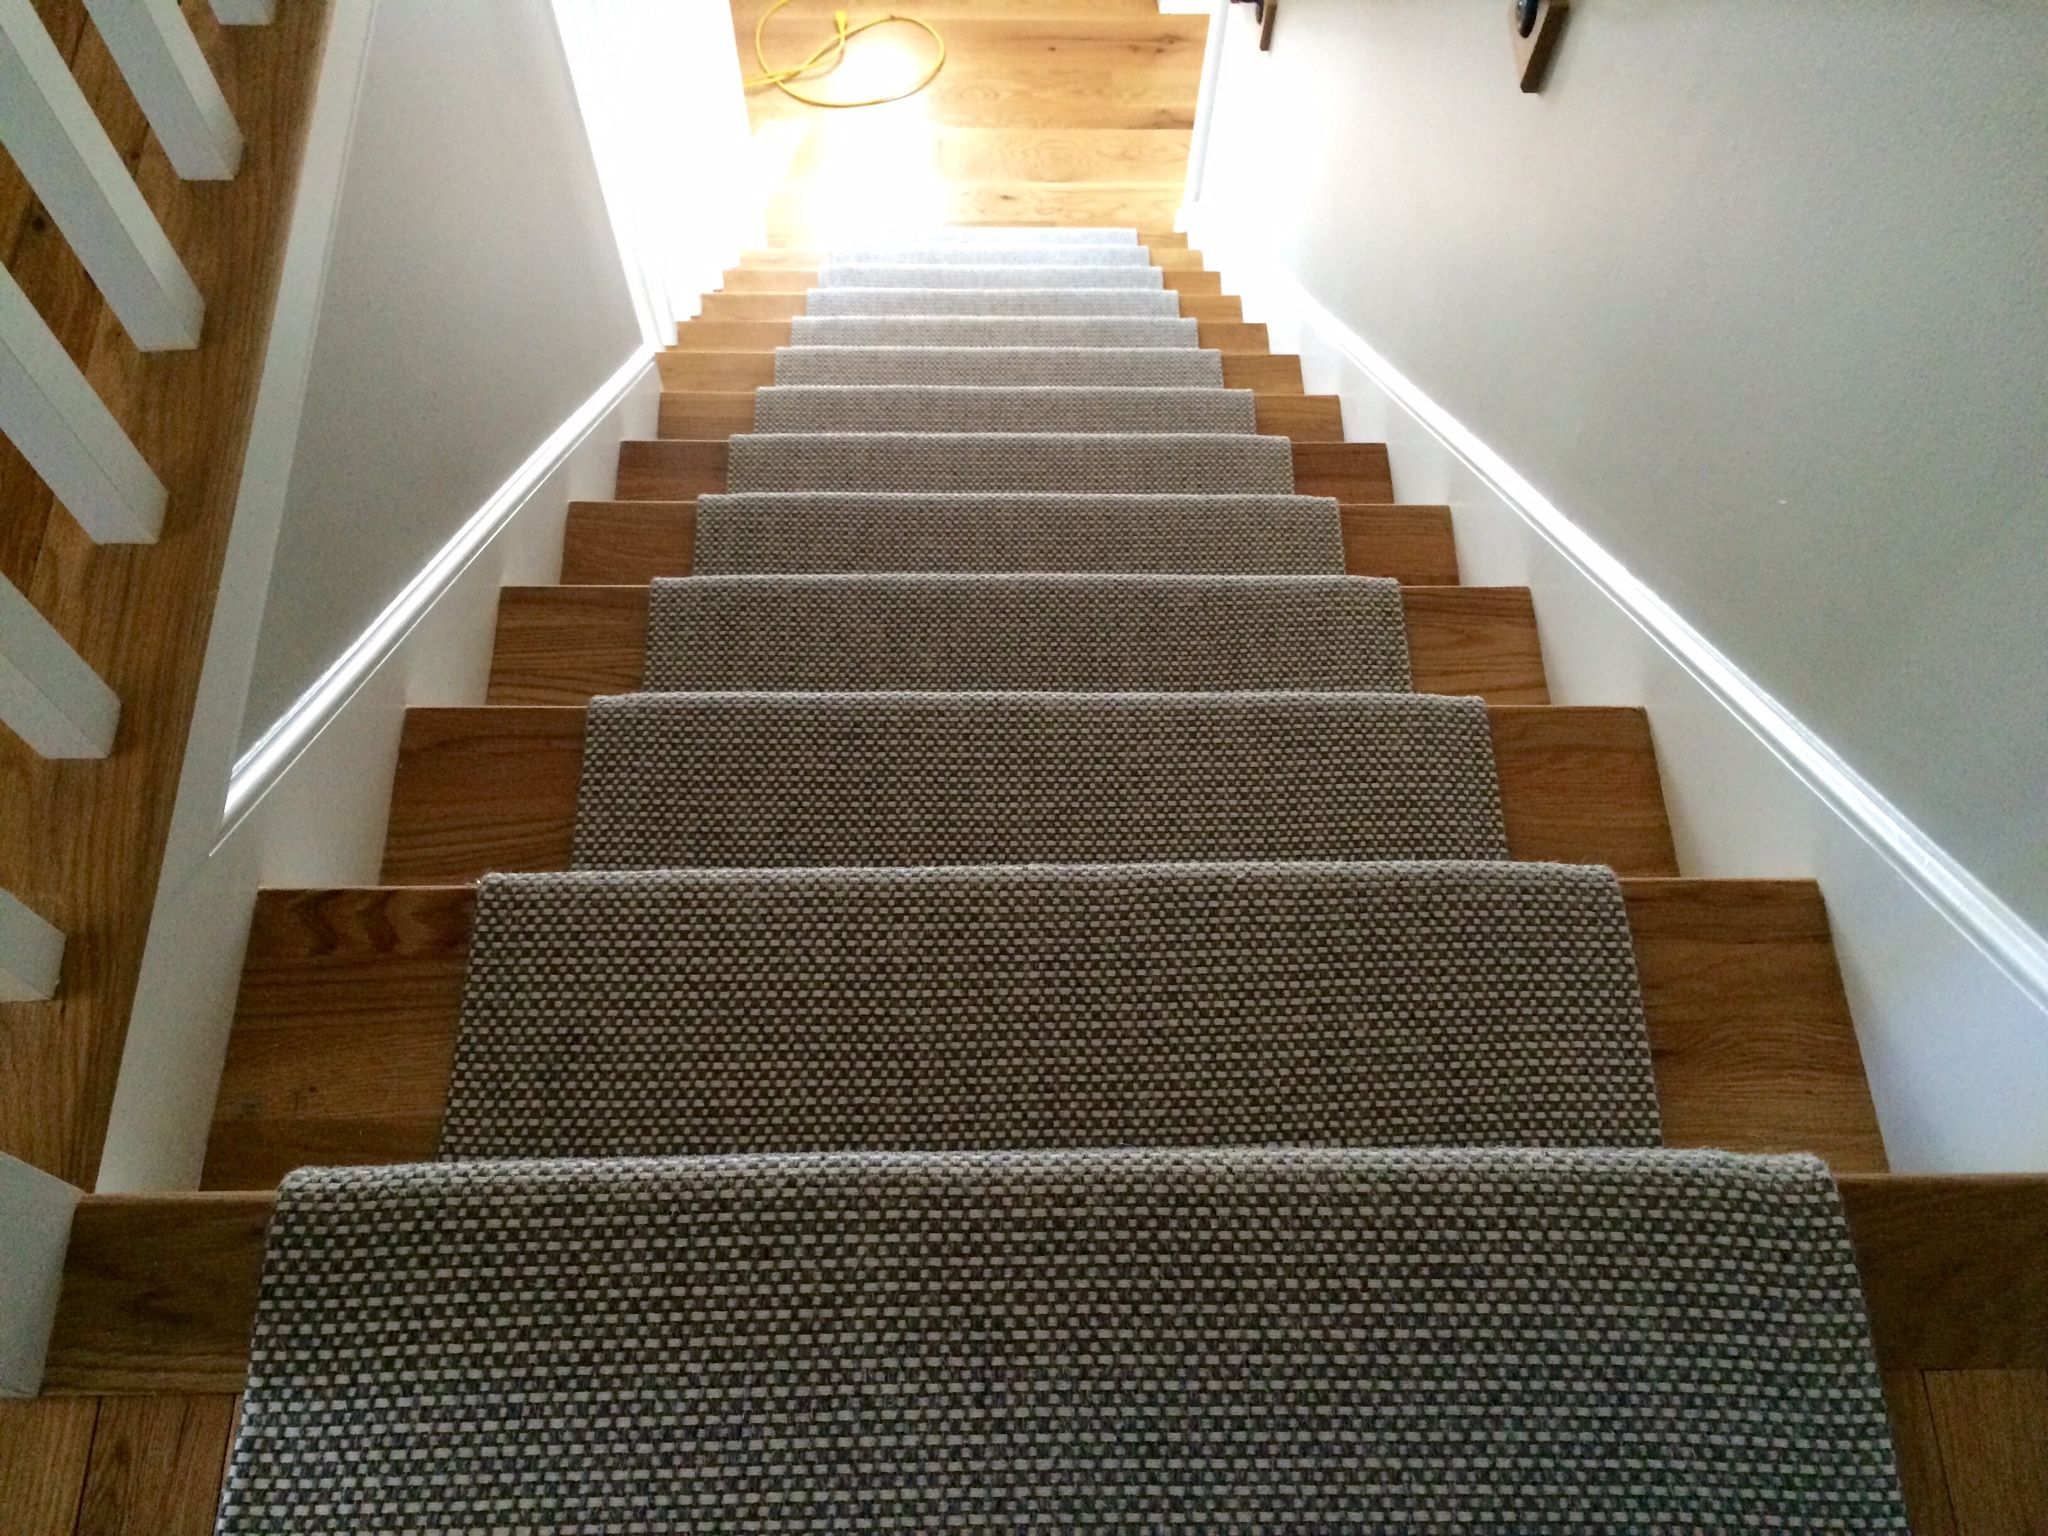 Incroyable Check Out This Merida Studio Flat Woven #wool #stair #runner That We  Fabricated Using A Fold And Stick Method.